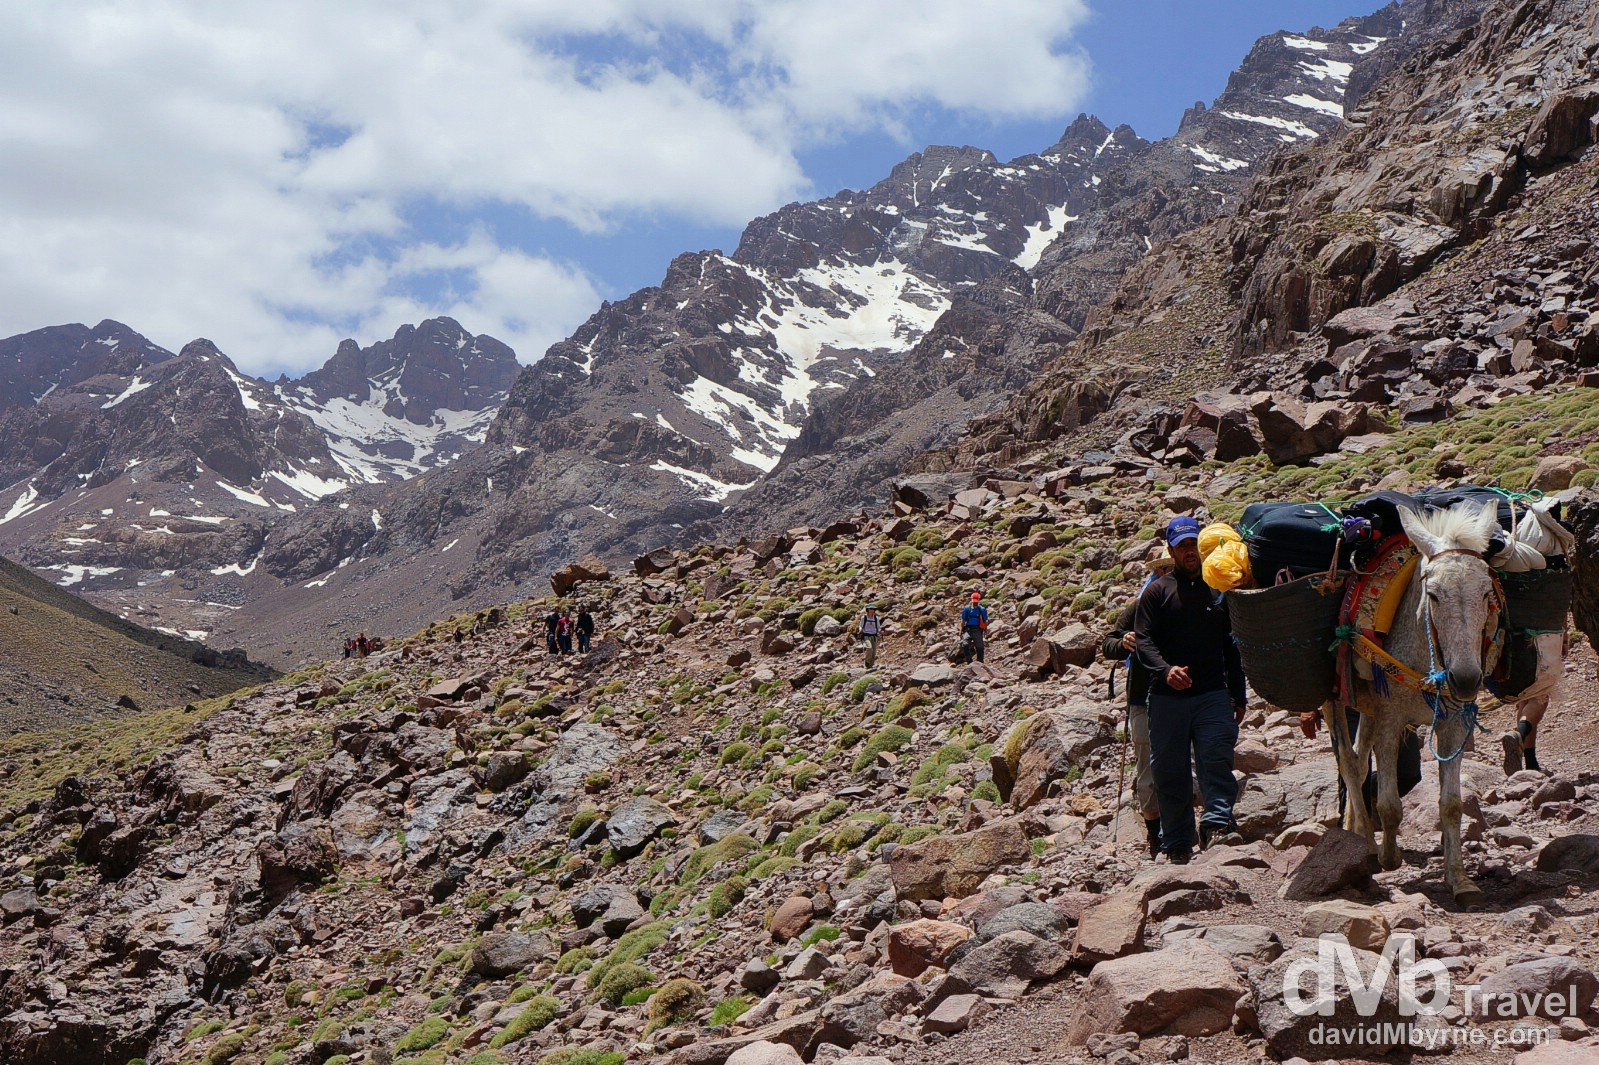 On the Jebel Toubkal trek in the High Atlas Mountains in central Morocco. May 10th, 2014.